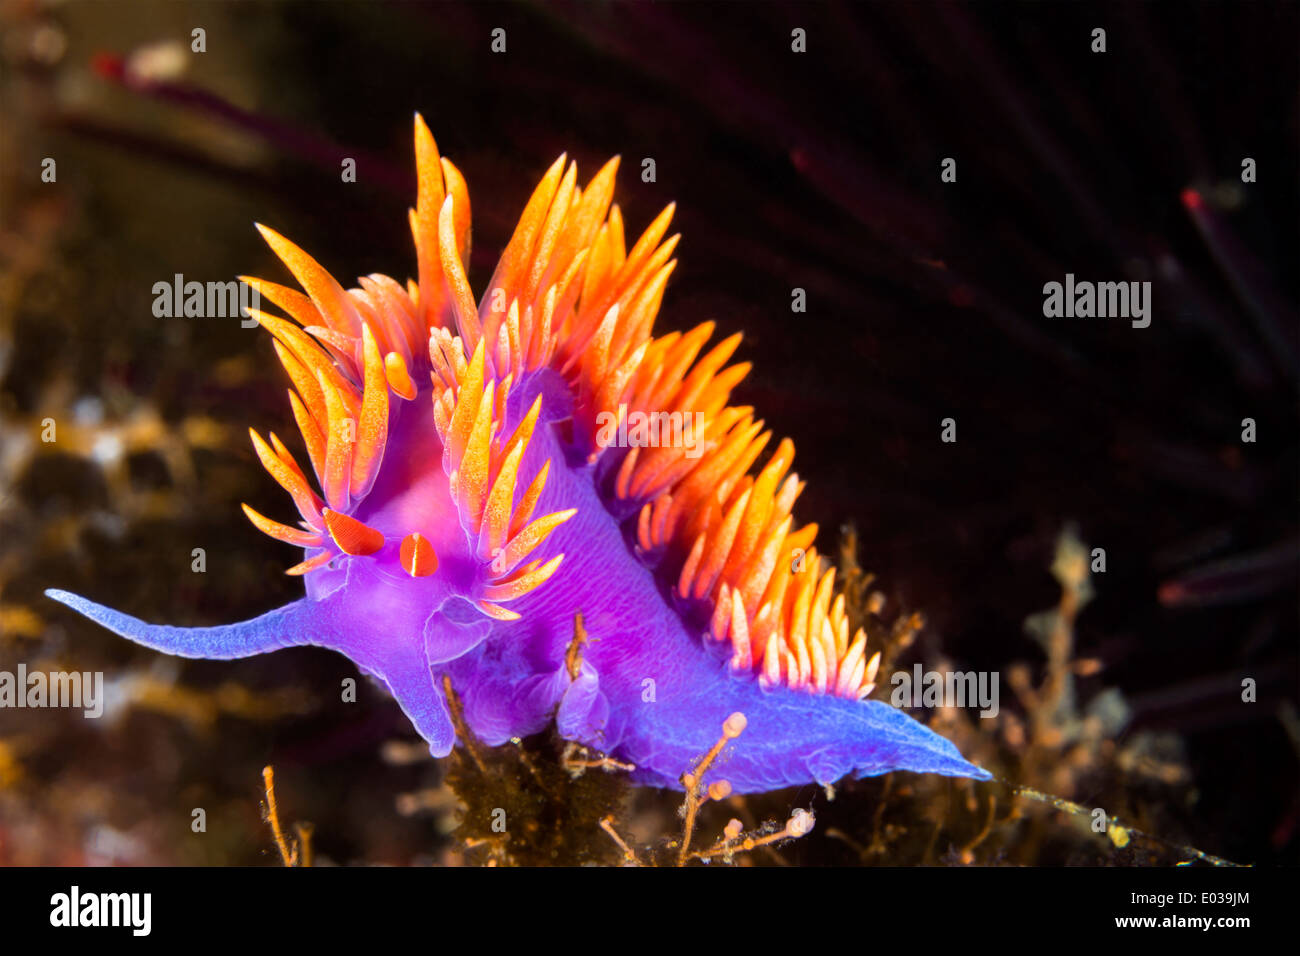 A Spanish shawl nudibranch snail, commonly found in the Channel Islands of California, crawls on branching cnidarians. - Stock Image